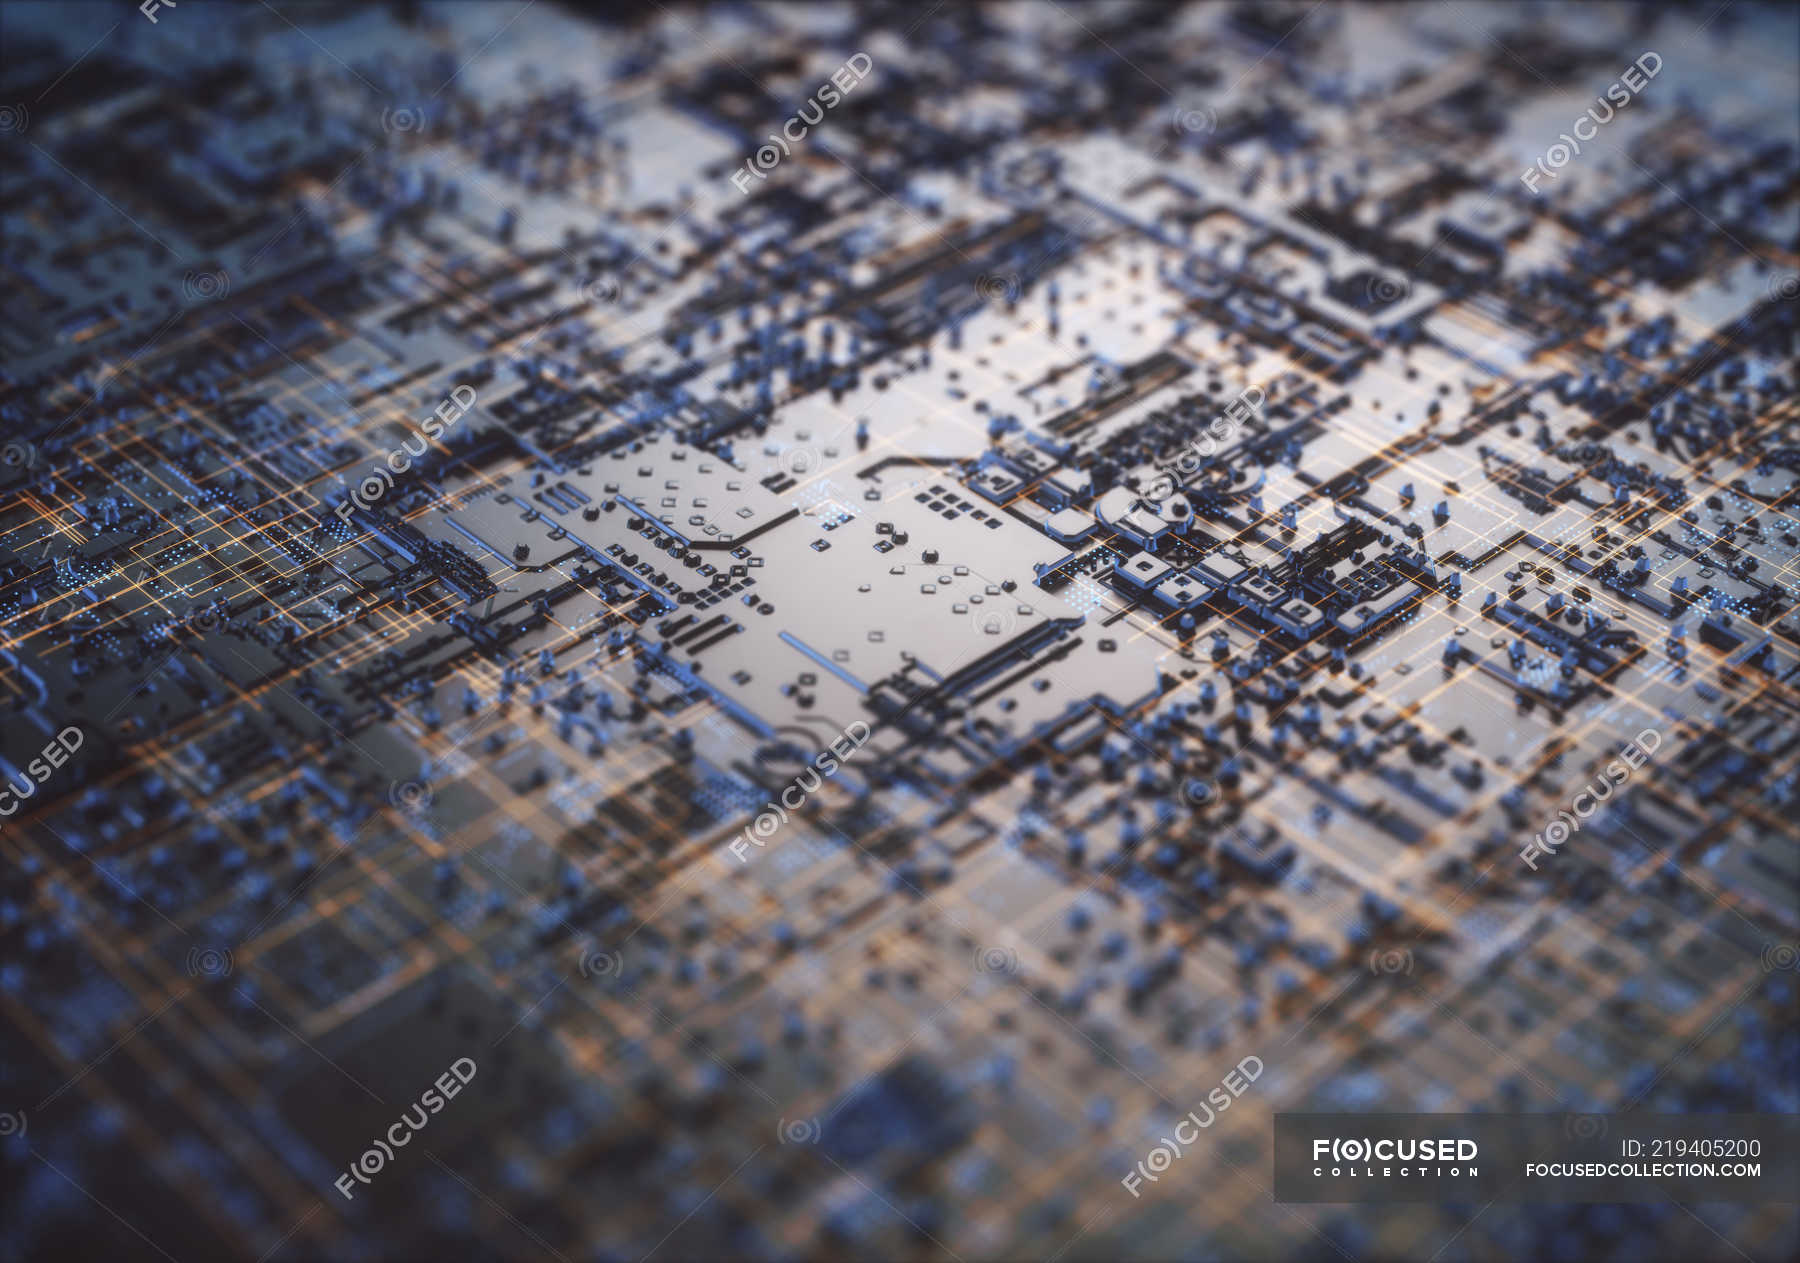 Abstract microchip technological structure, illustration